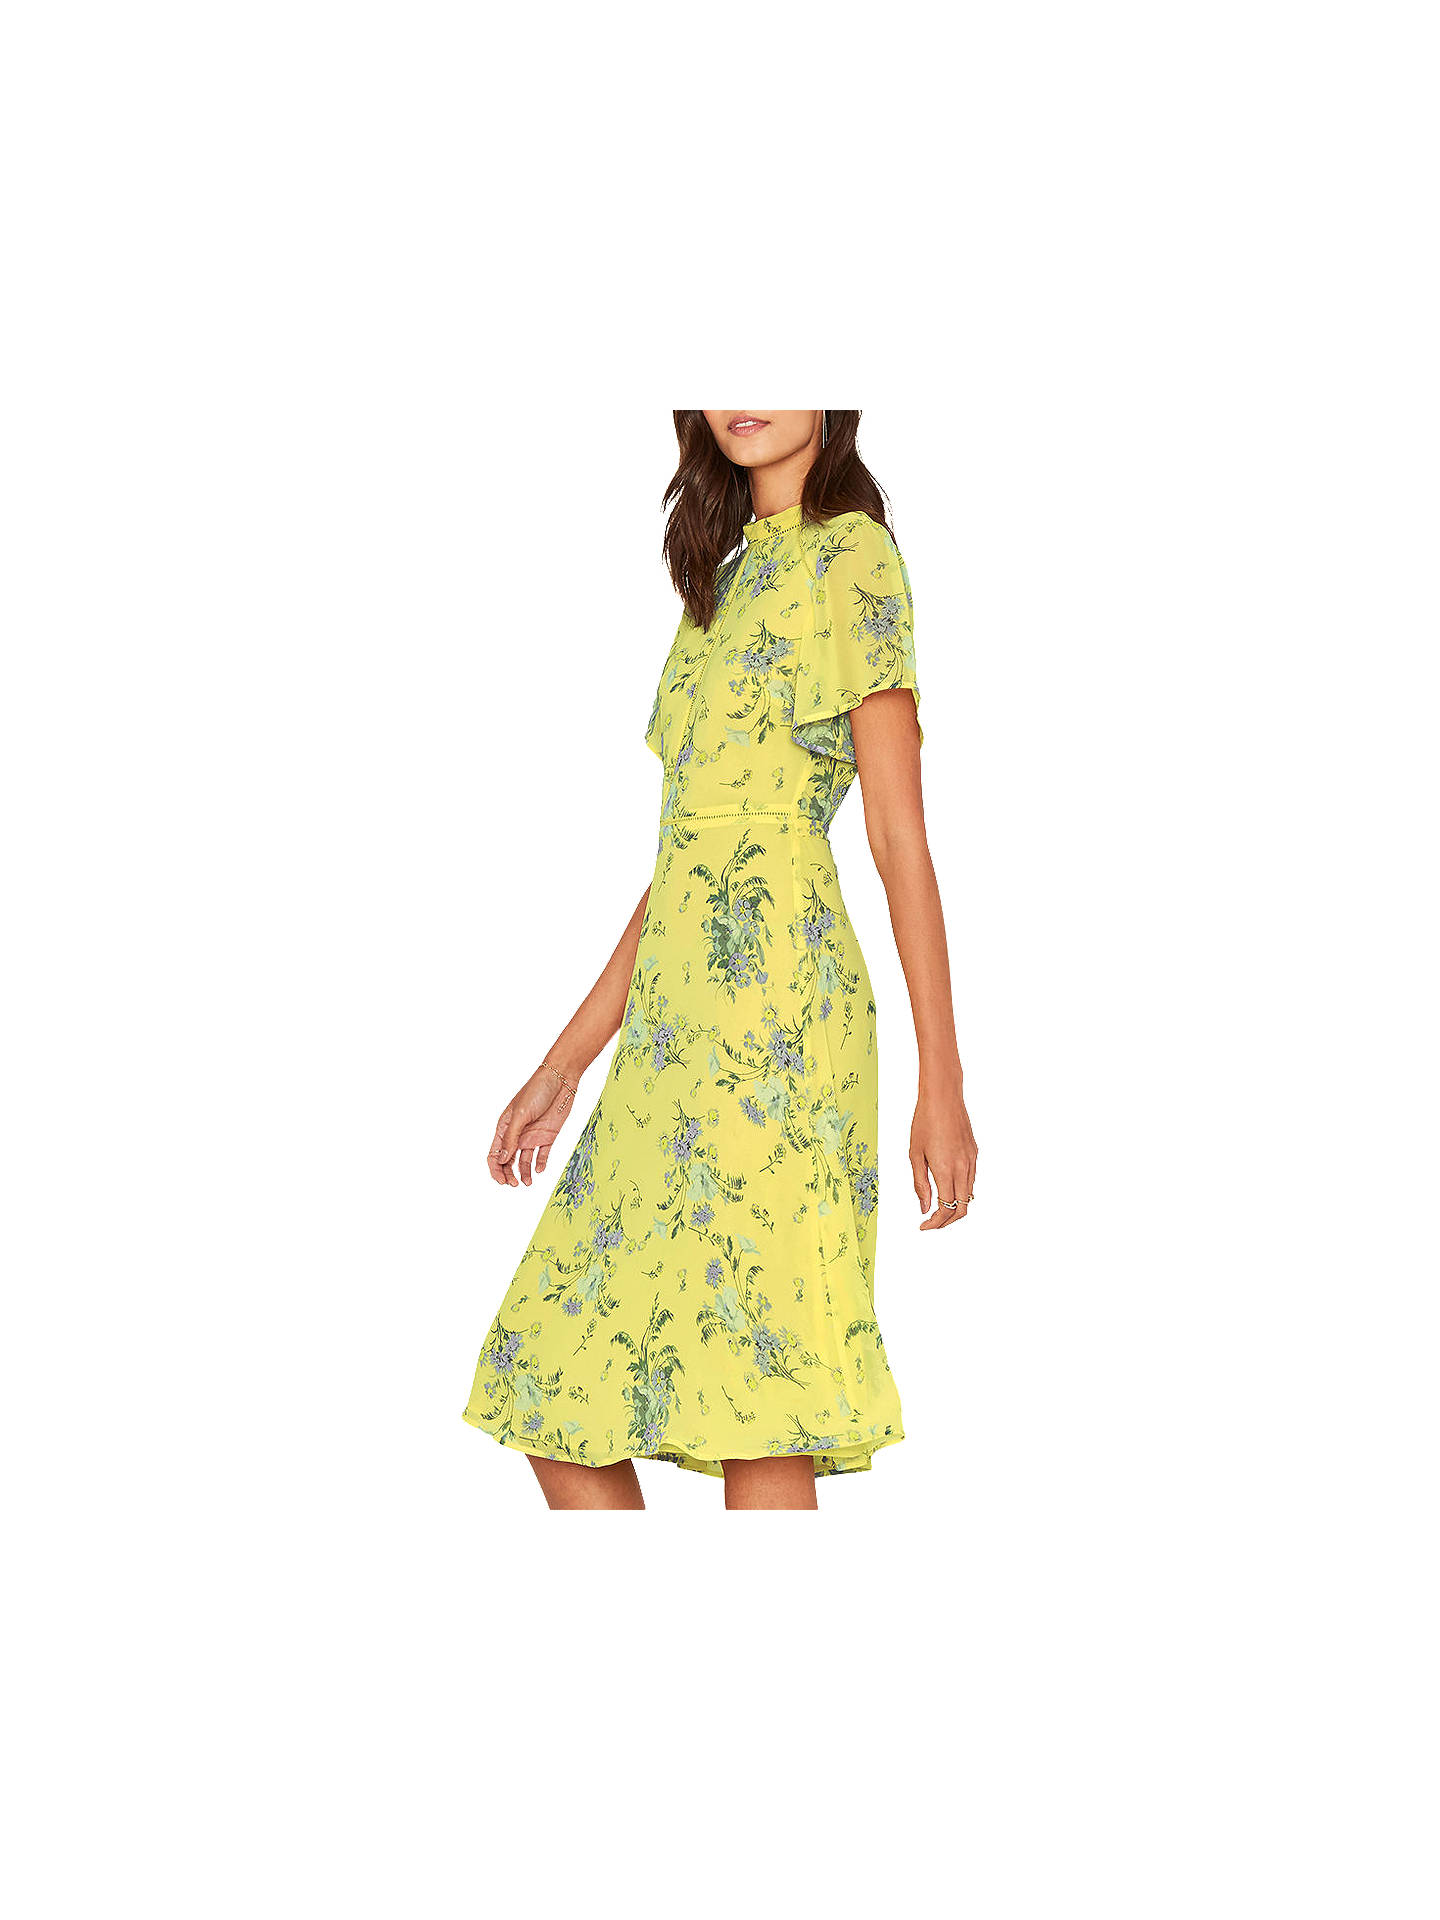 6dd8317e21df Buy Oasis Provence Floral Print Midi Dress, Yellow/Lilac, 6 Online at  johnlewis ...